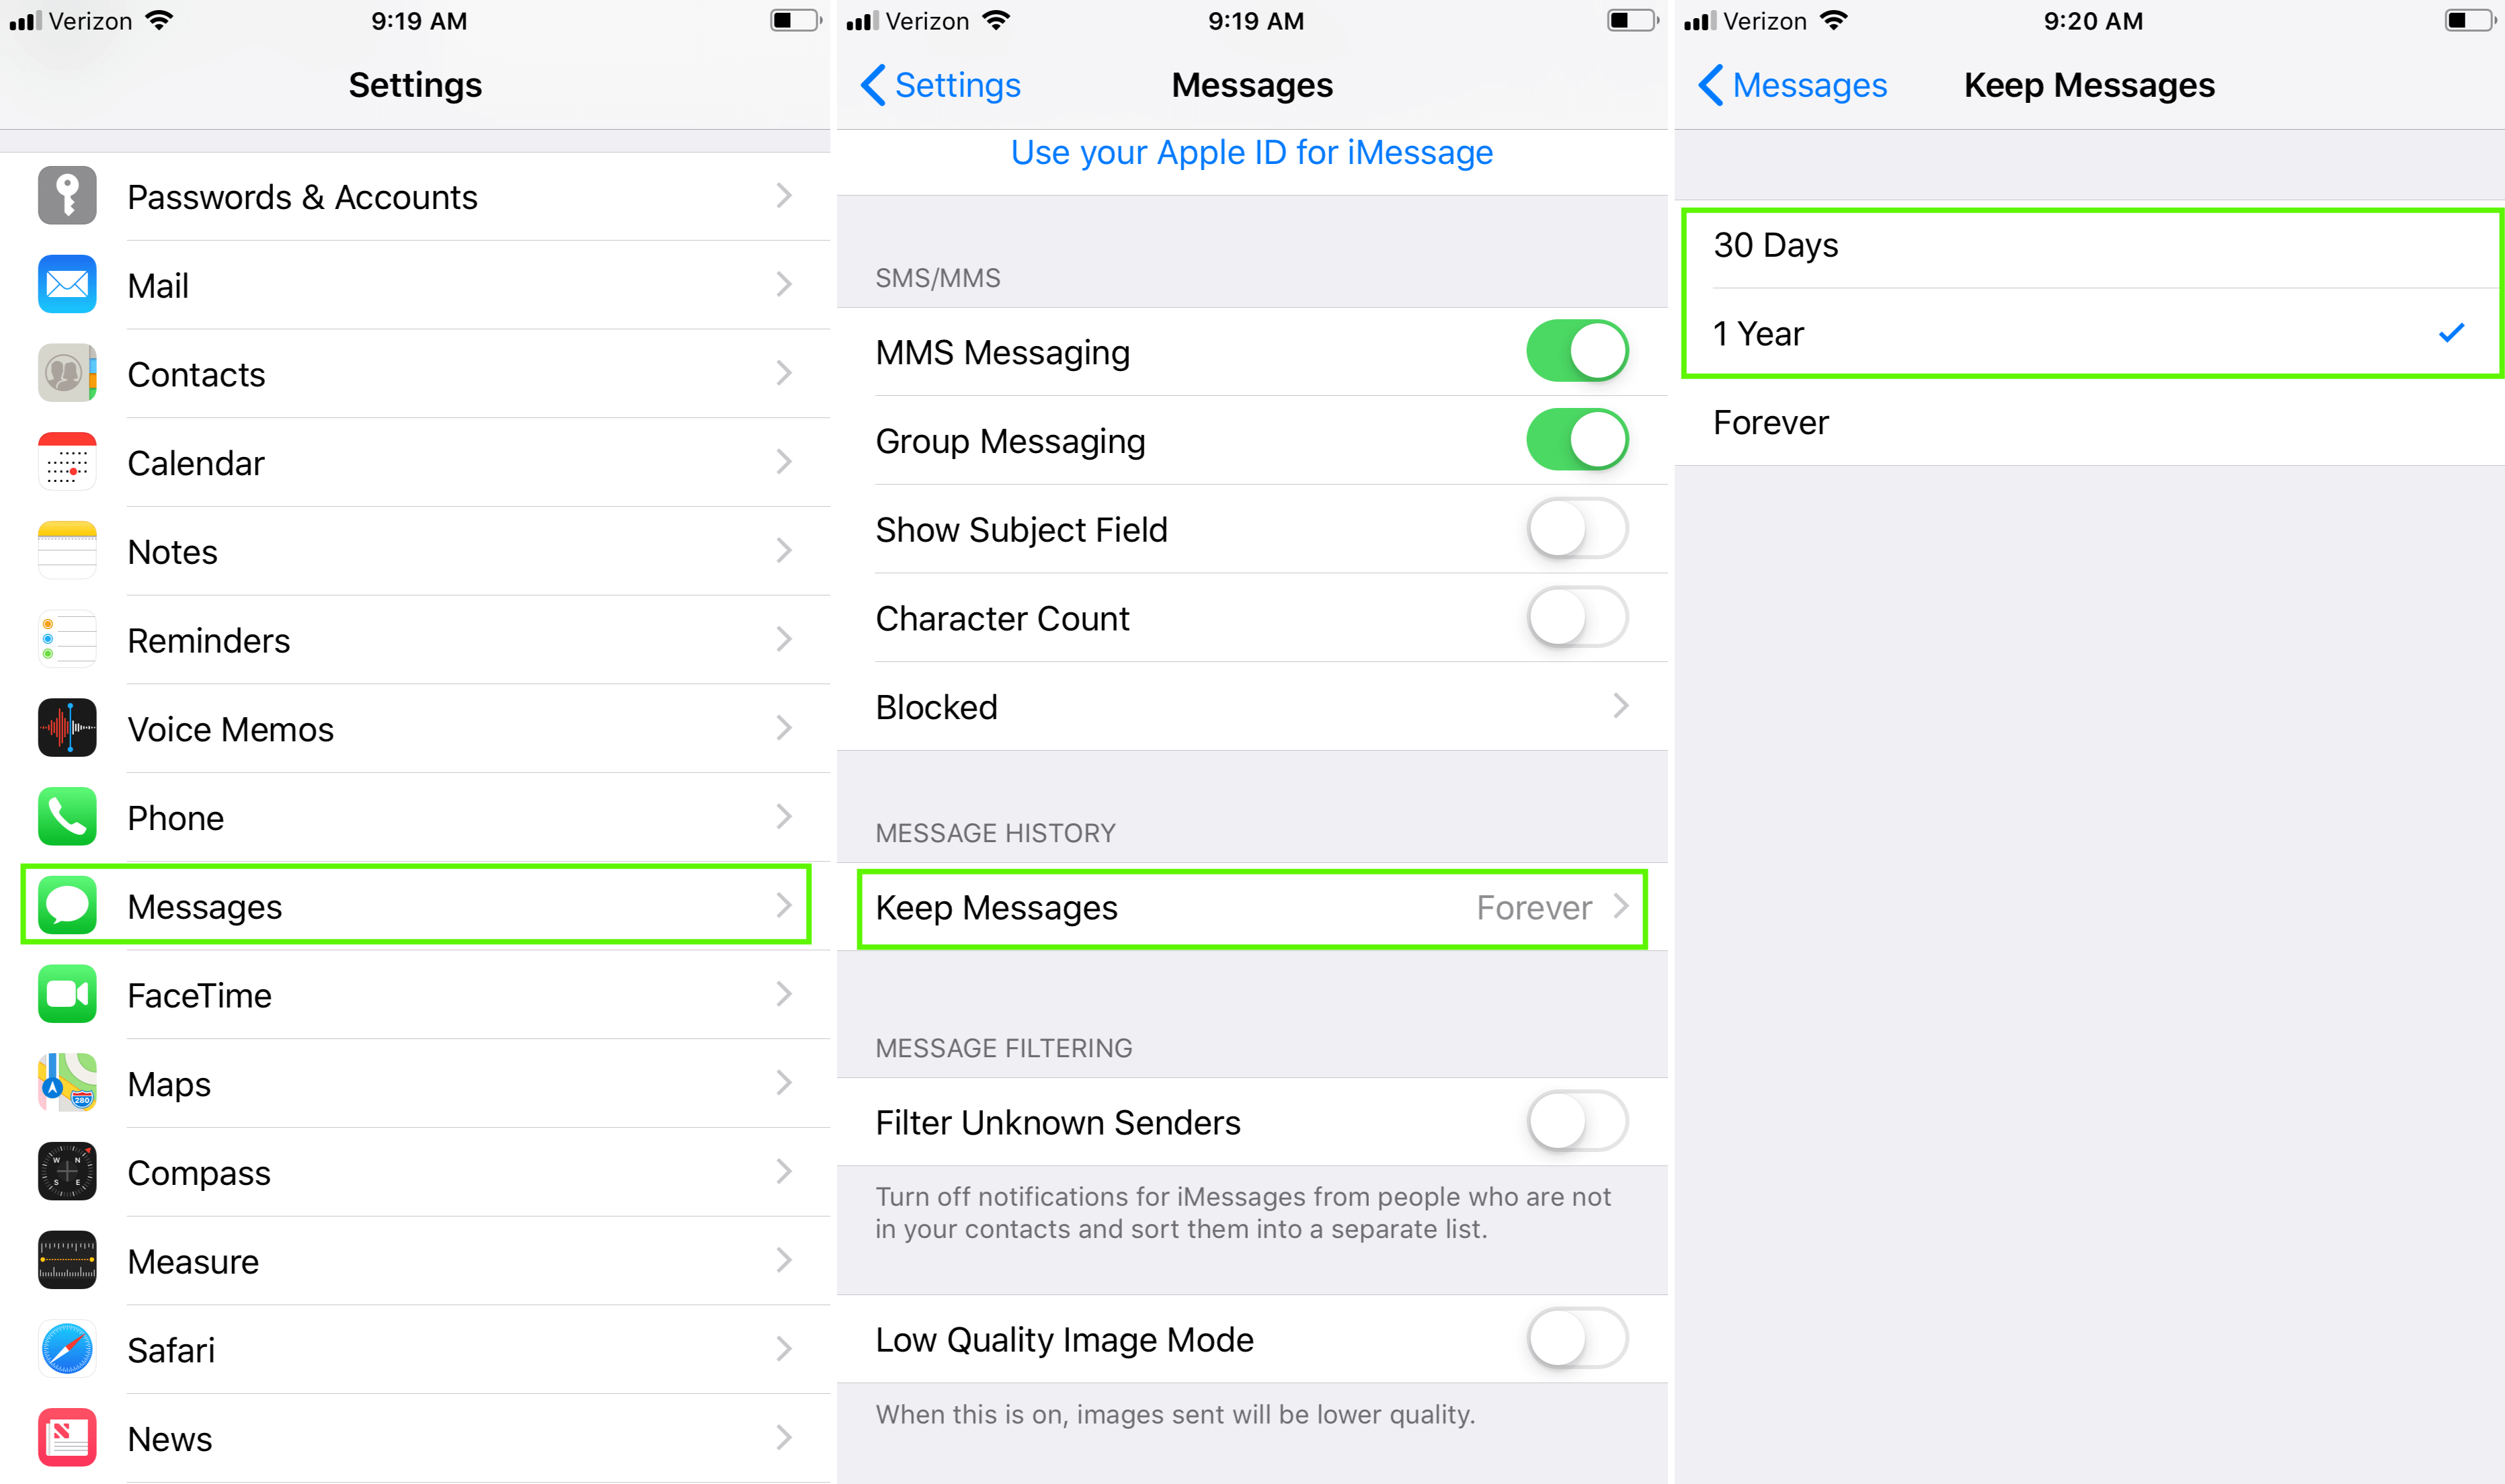 How to optimize iPhone storage by deleting message data